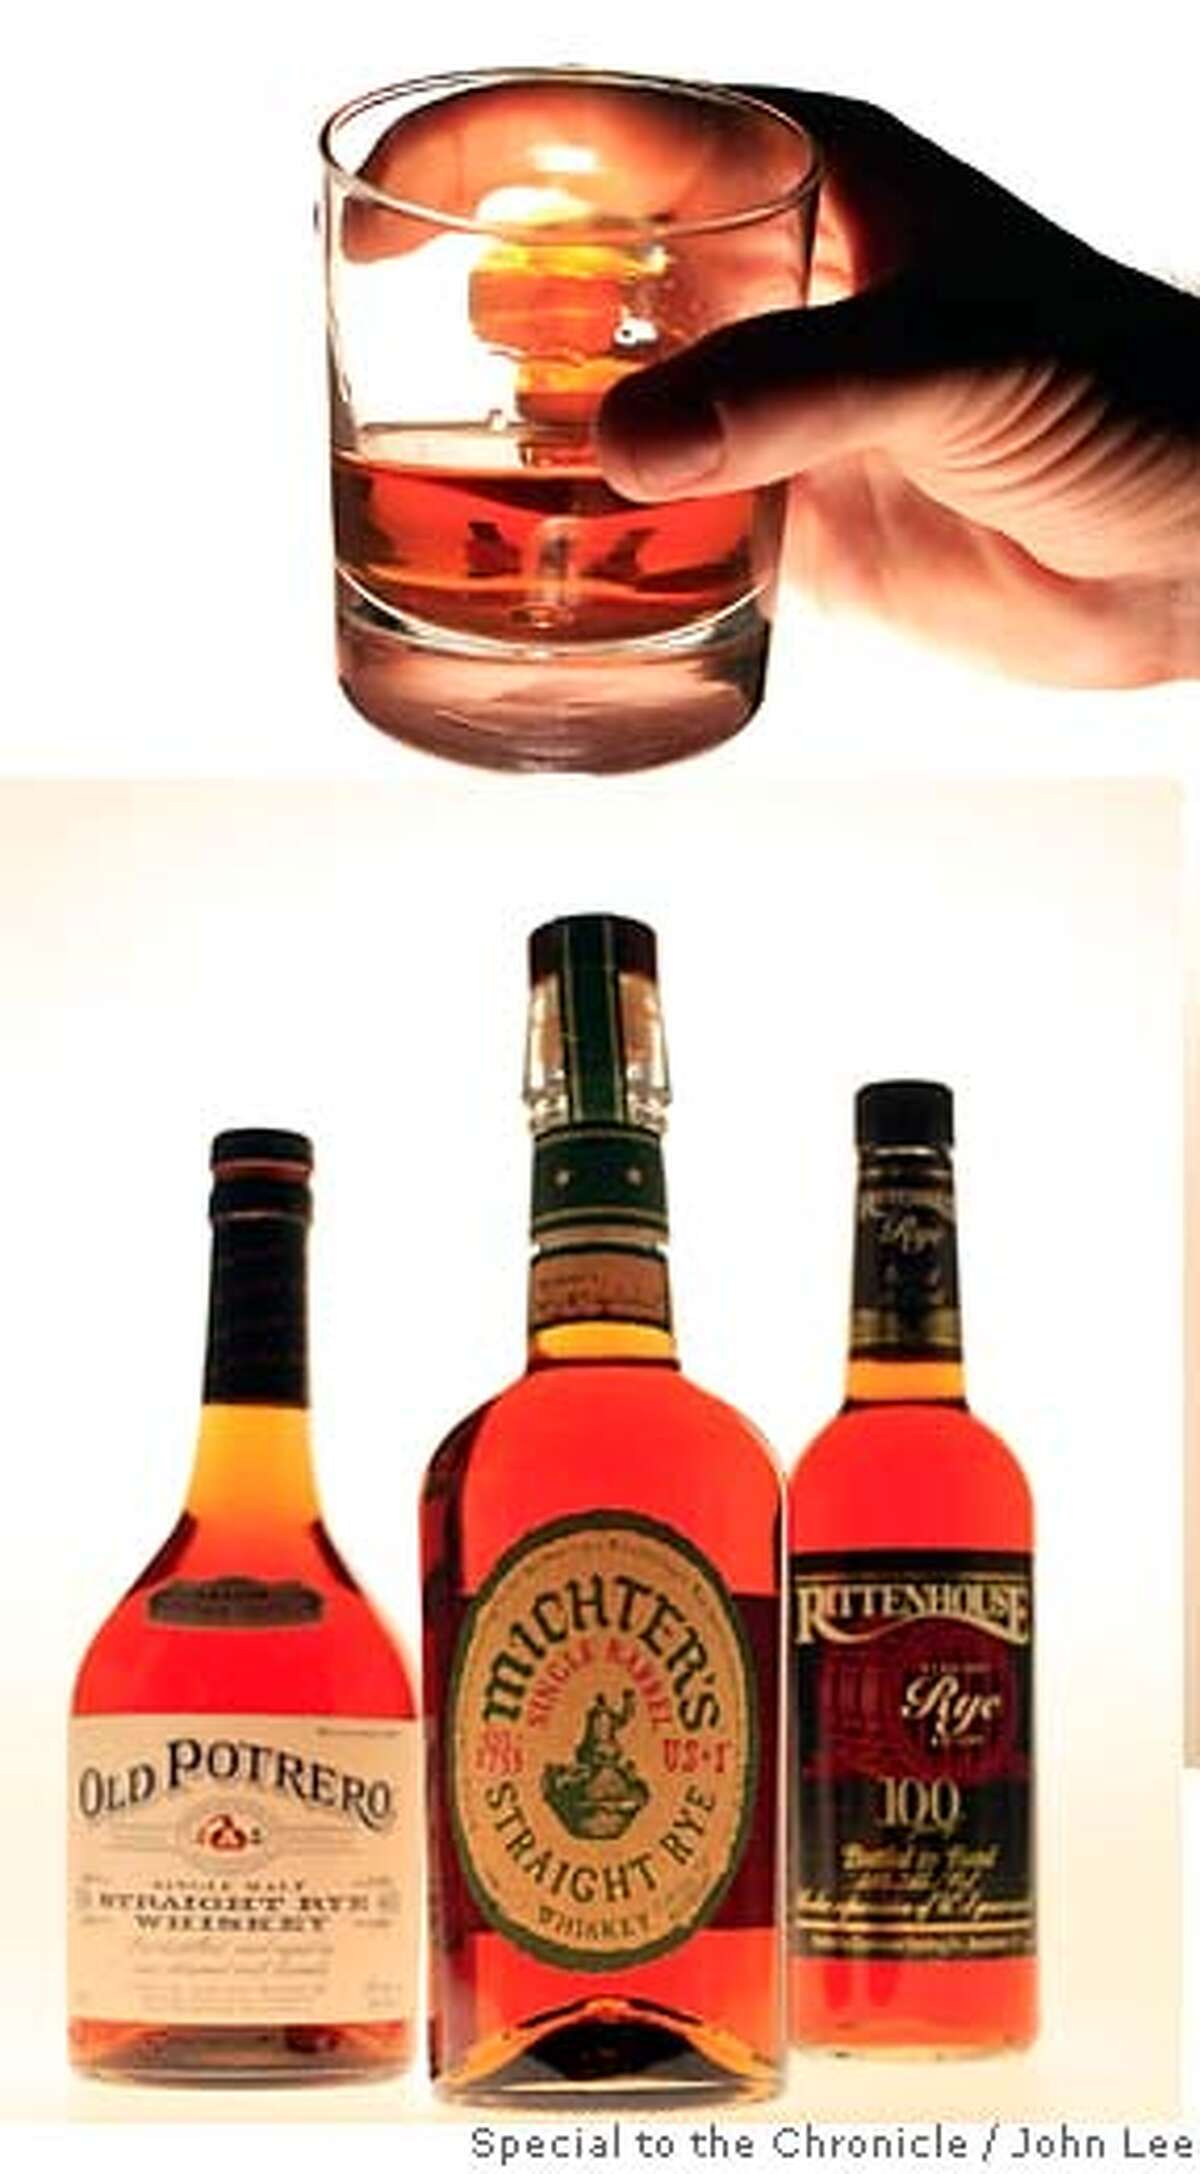 RYE16_01JOHNLEE.JPG For rye drink story. By JOHN LEE/SPECIAL TO THE CHRONICLE